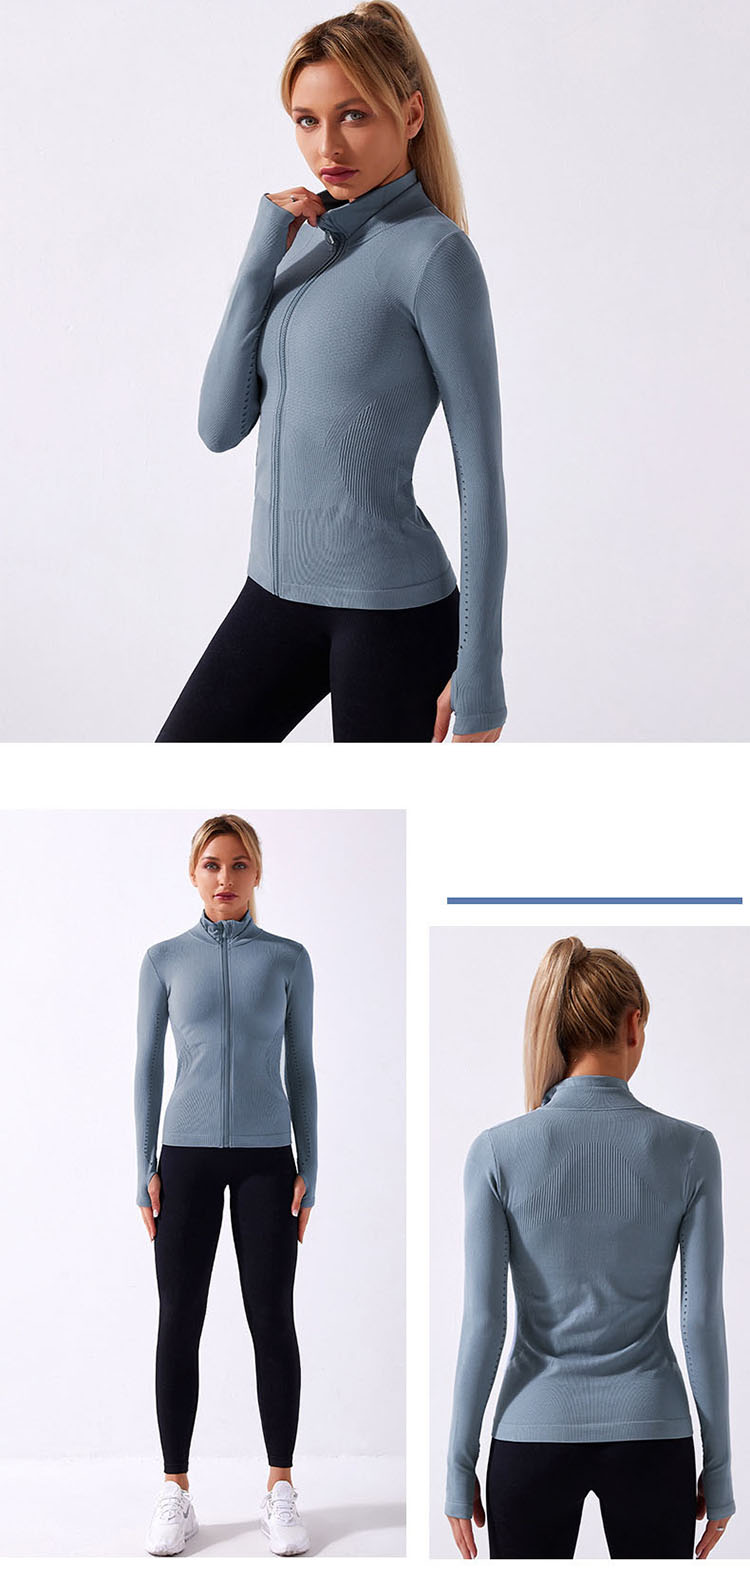 The theme of womens athletic jacket mainly uses the style of light sports